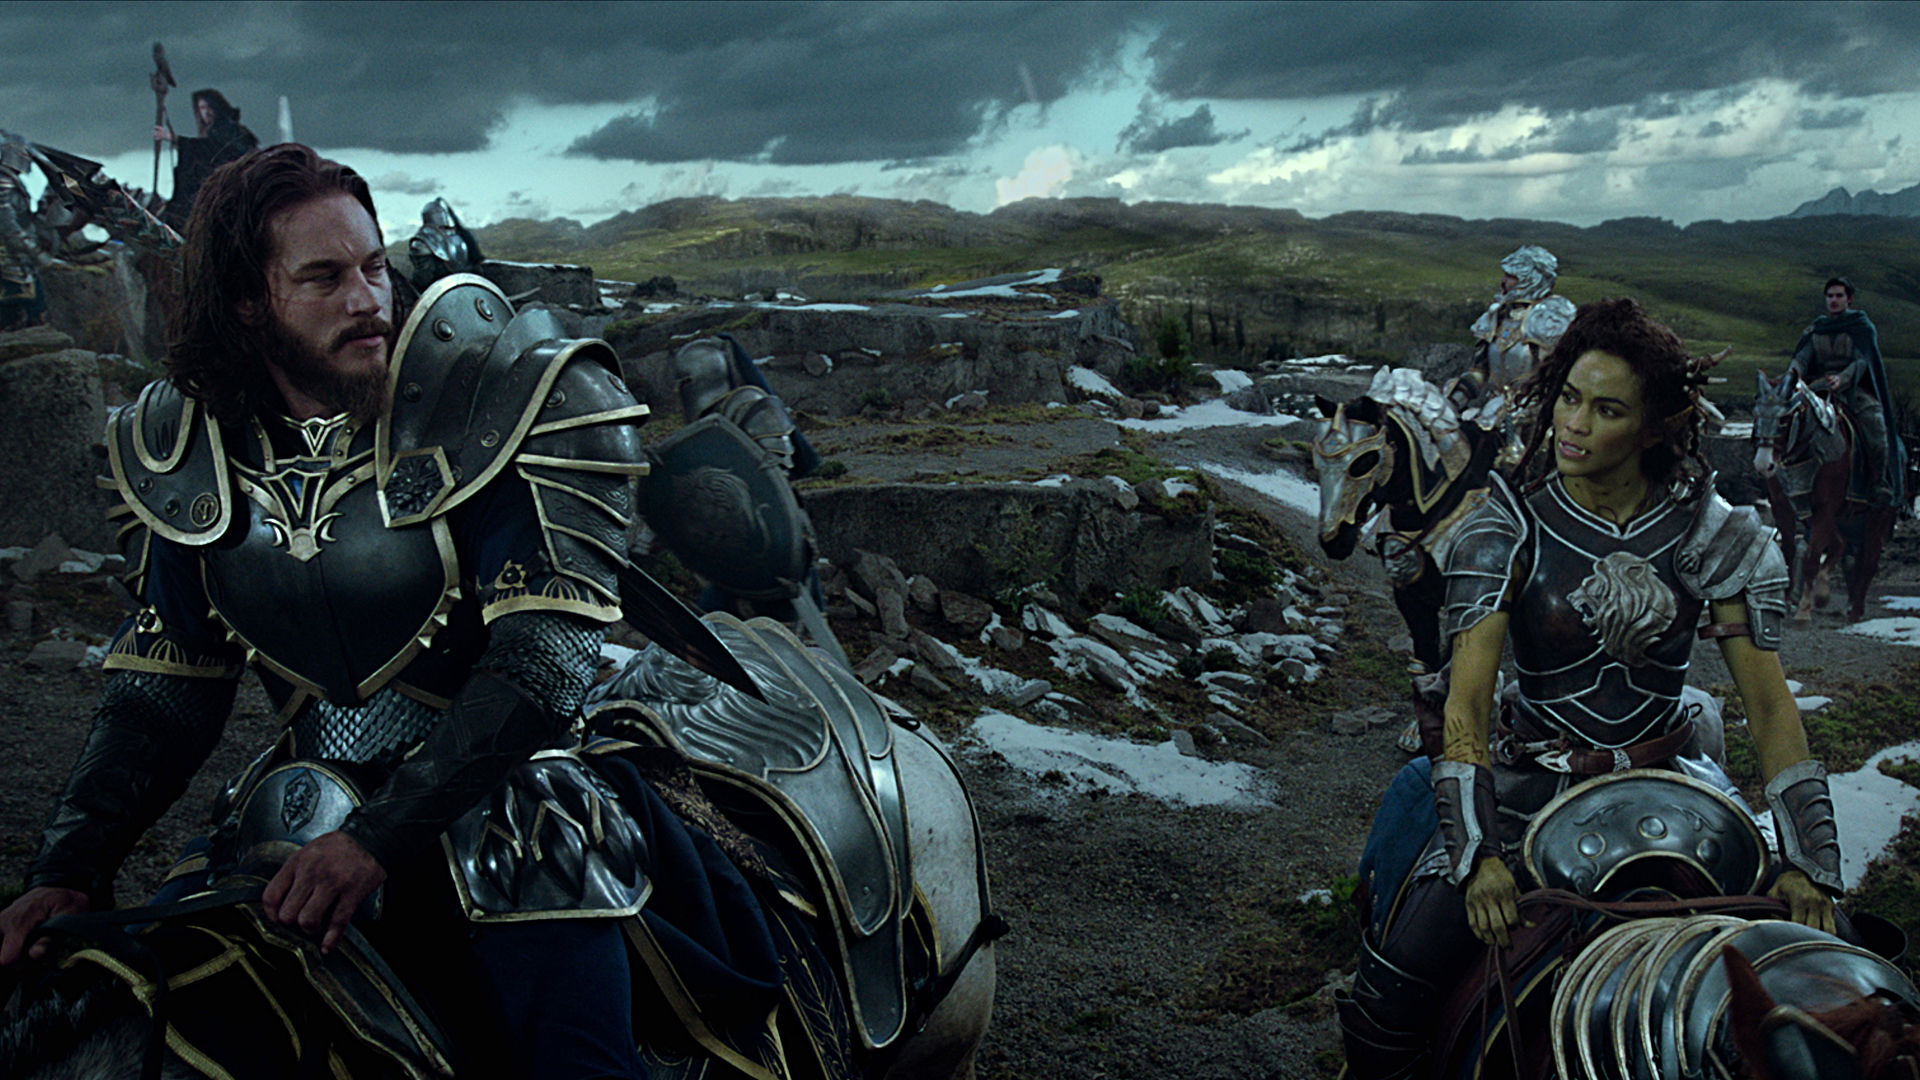 warcraft movie images hi res 1 Warcraft Director Has Conflicting Feelings Towards Movie